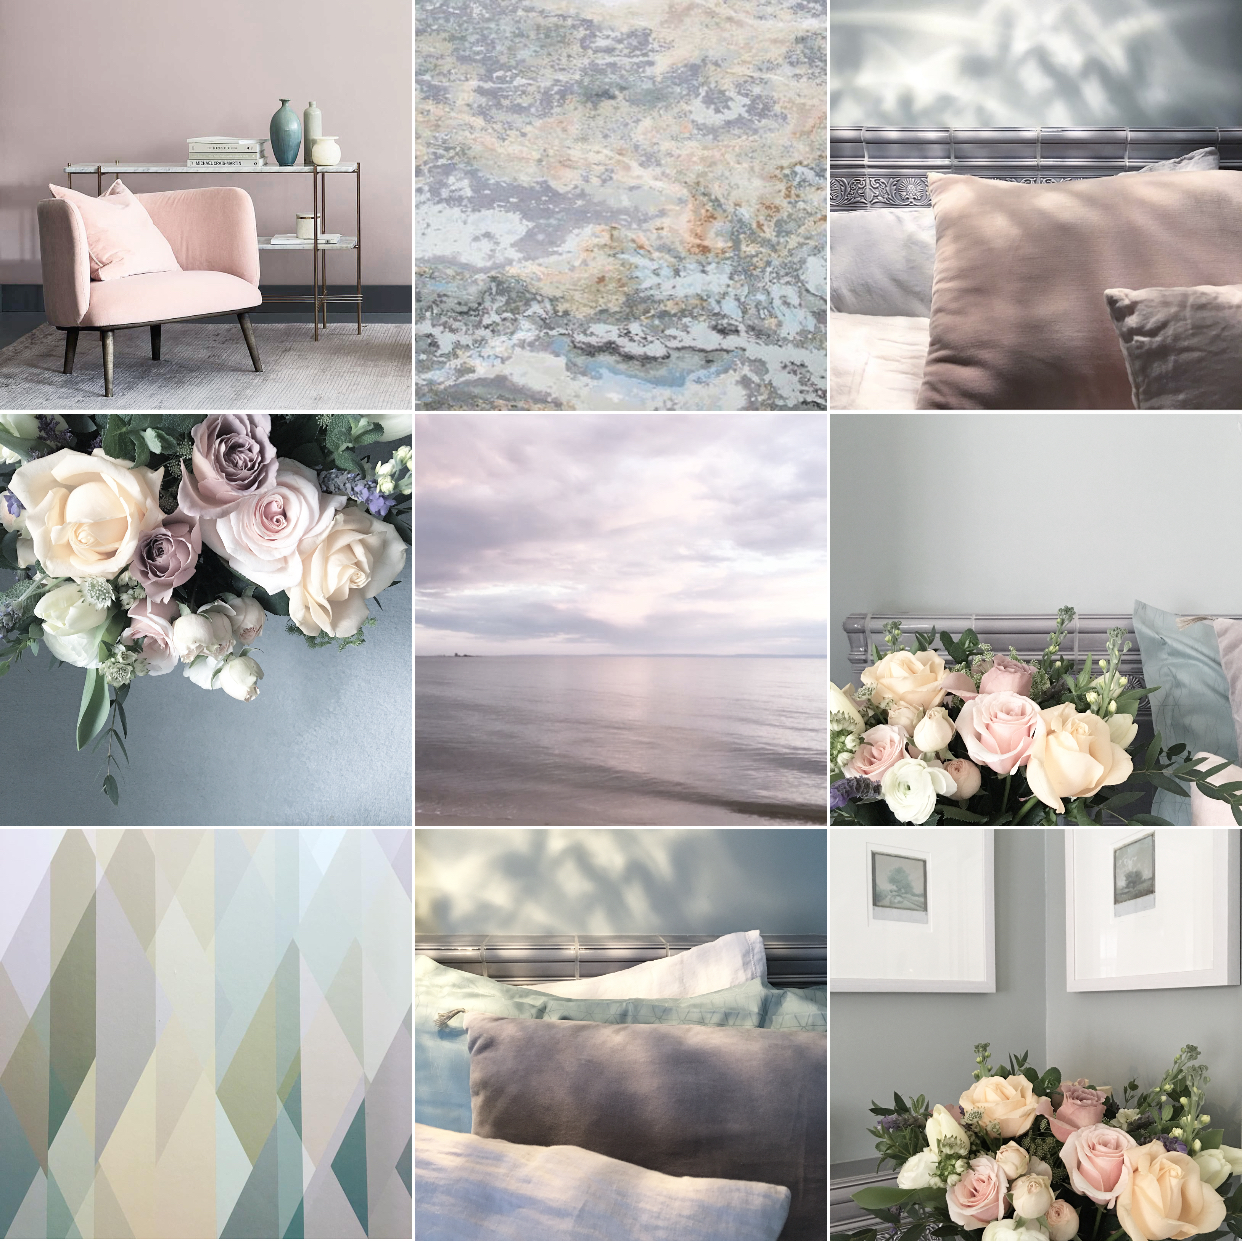 The New Neutrals: Bye Bye beige'n'white, hello tearose, palest peach, mint and lavender hues. The New Neutrals Insta-colourscape. Follow feed for full captions and credits. All flowers by The Real Flower Company.